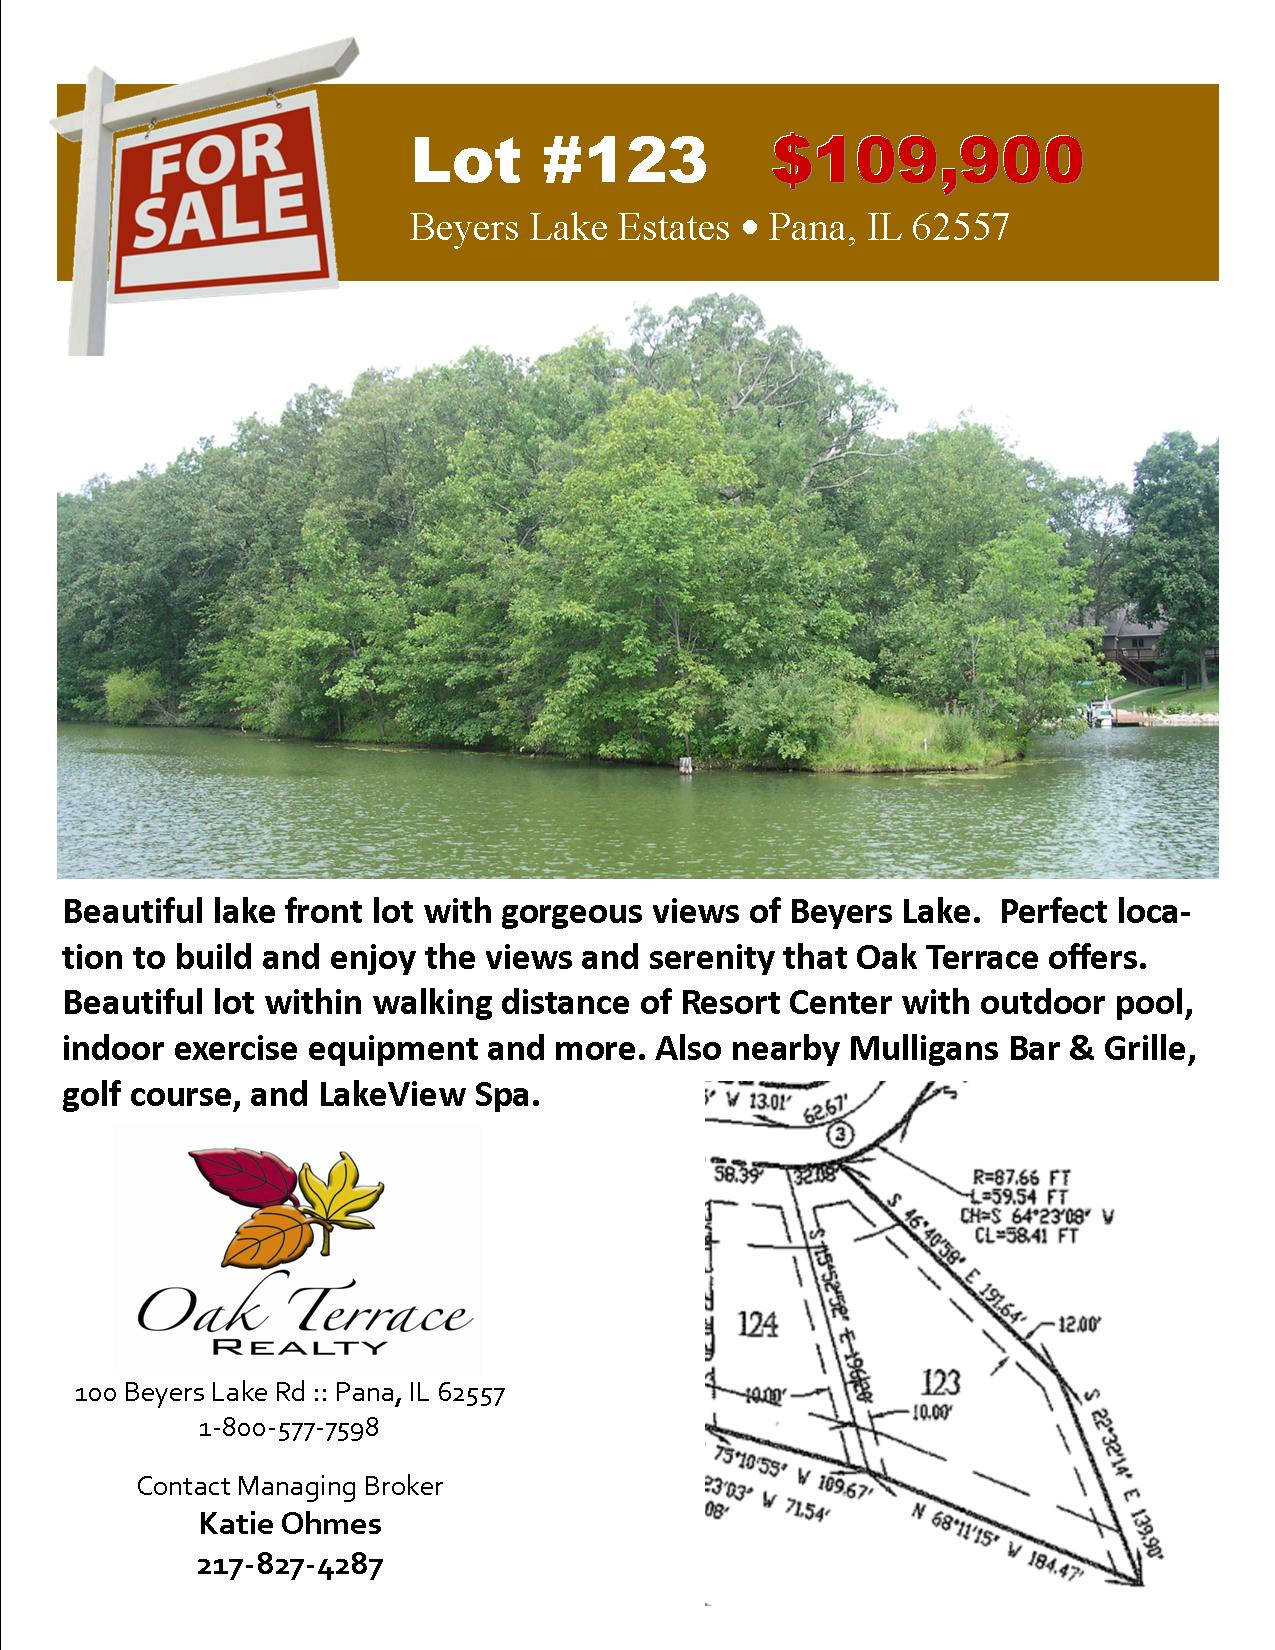 Lot #123 Sales Flyer